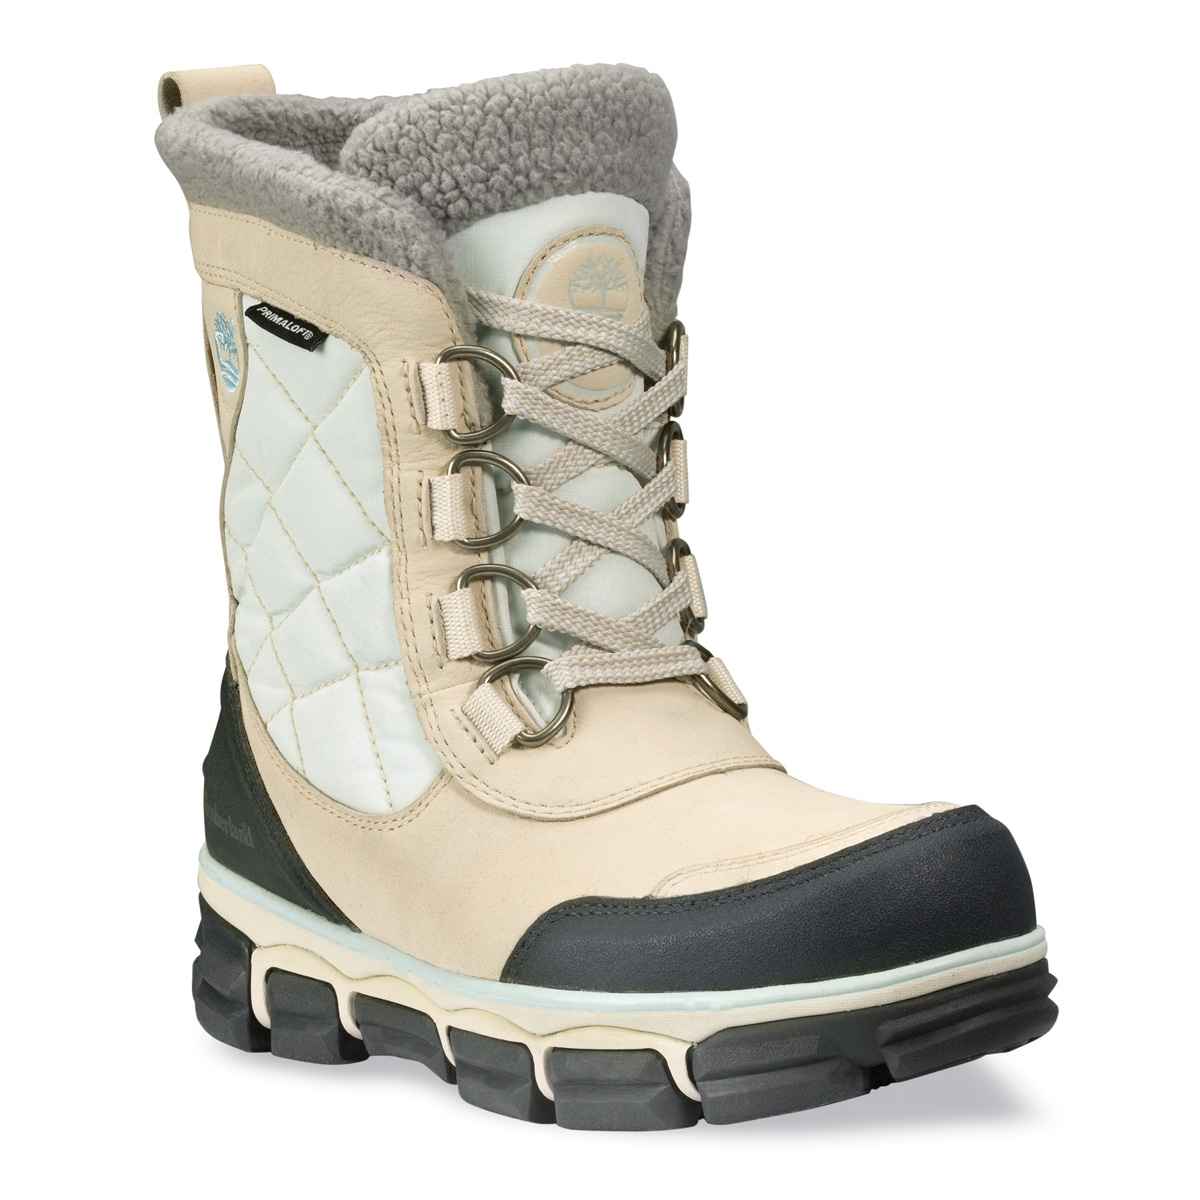 695c631d4cf Timberland Earthkeepers Mendon Mid Leather/Fabric WP Walking Boots  (Women's) - Winter White with White